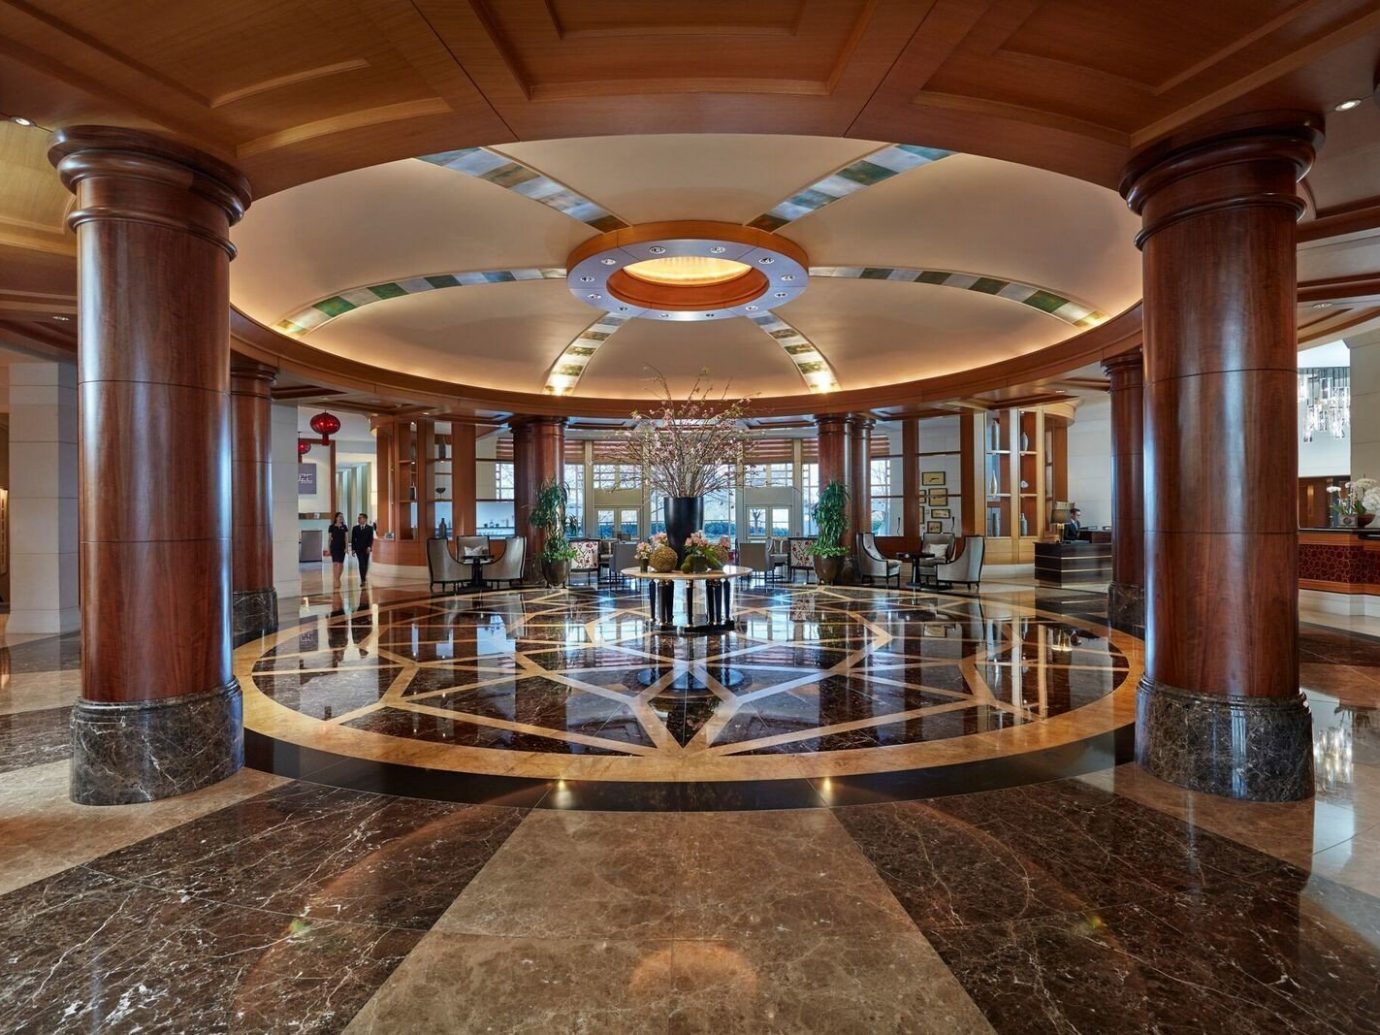 Hotels ceiling indoor Lobby building estate interior design real estate hall furniture